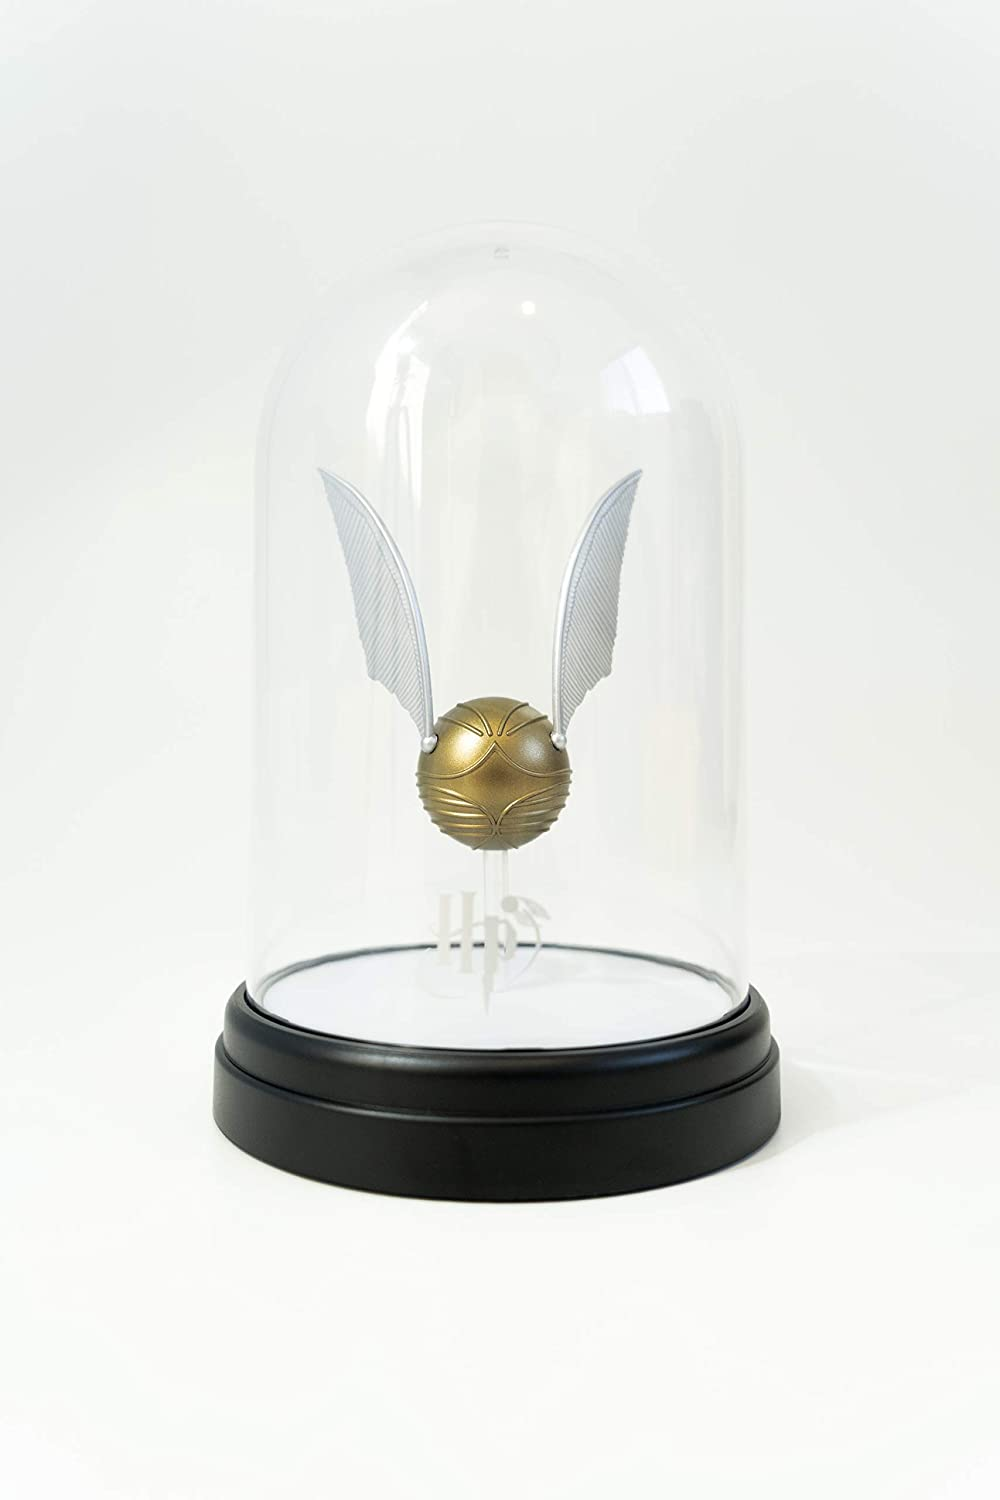 Paladone Harry Potter Golden Snitch Light - Table Lamp